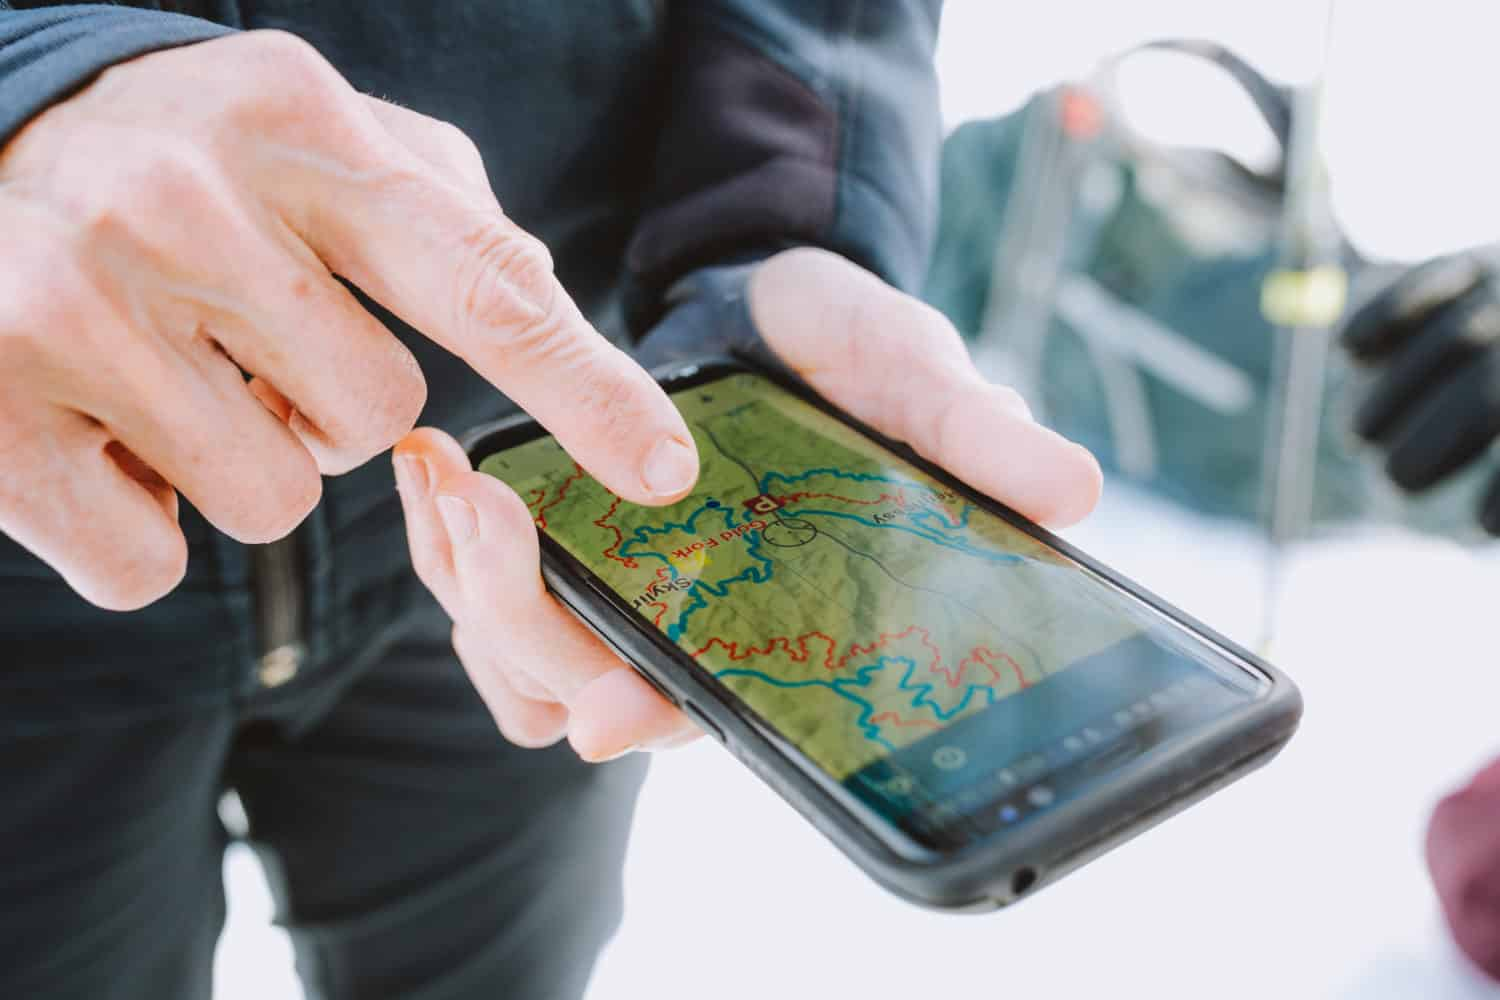 Smartphone showing trail map app Avenza